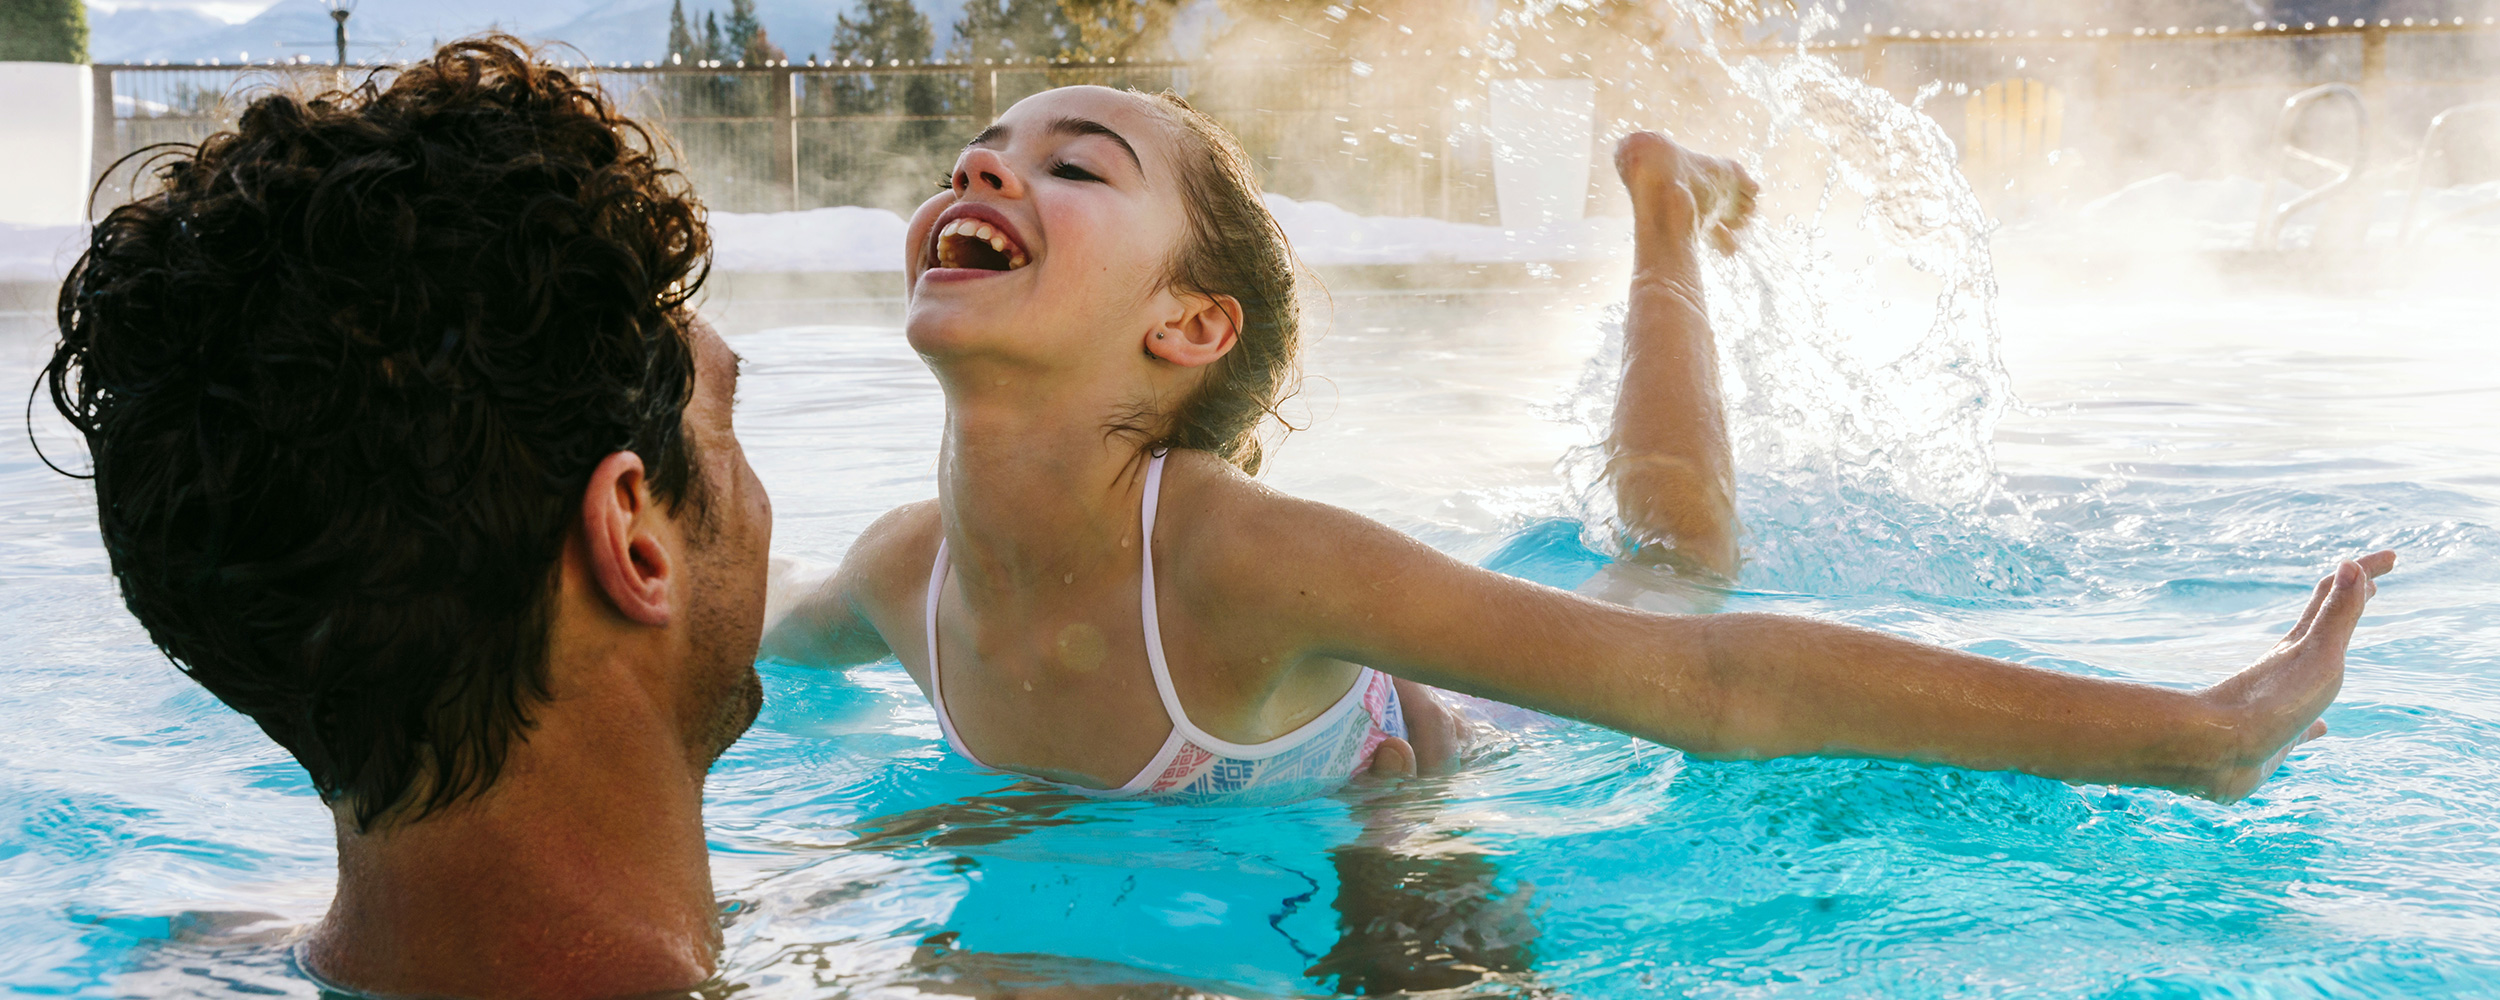 A father splashes with his daughter in Fairmont Jasper Park Lodge's heated outdoor pool with mountains blurred in the background.